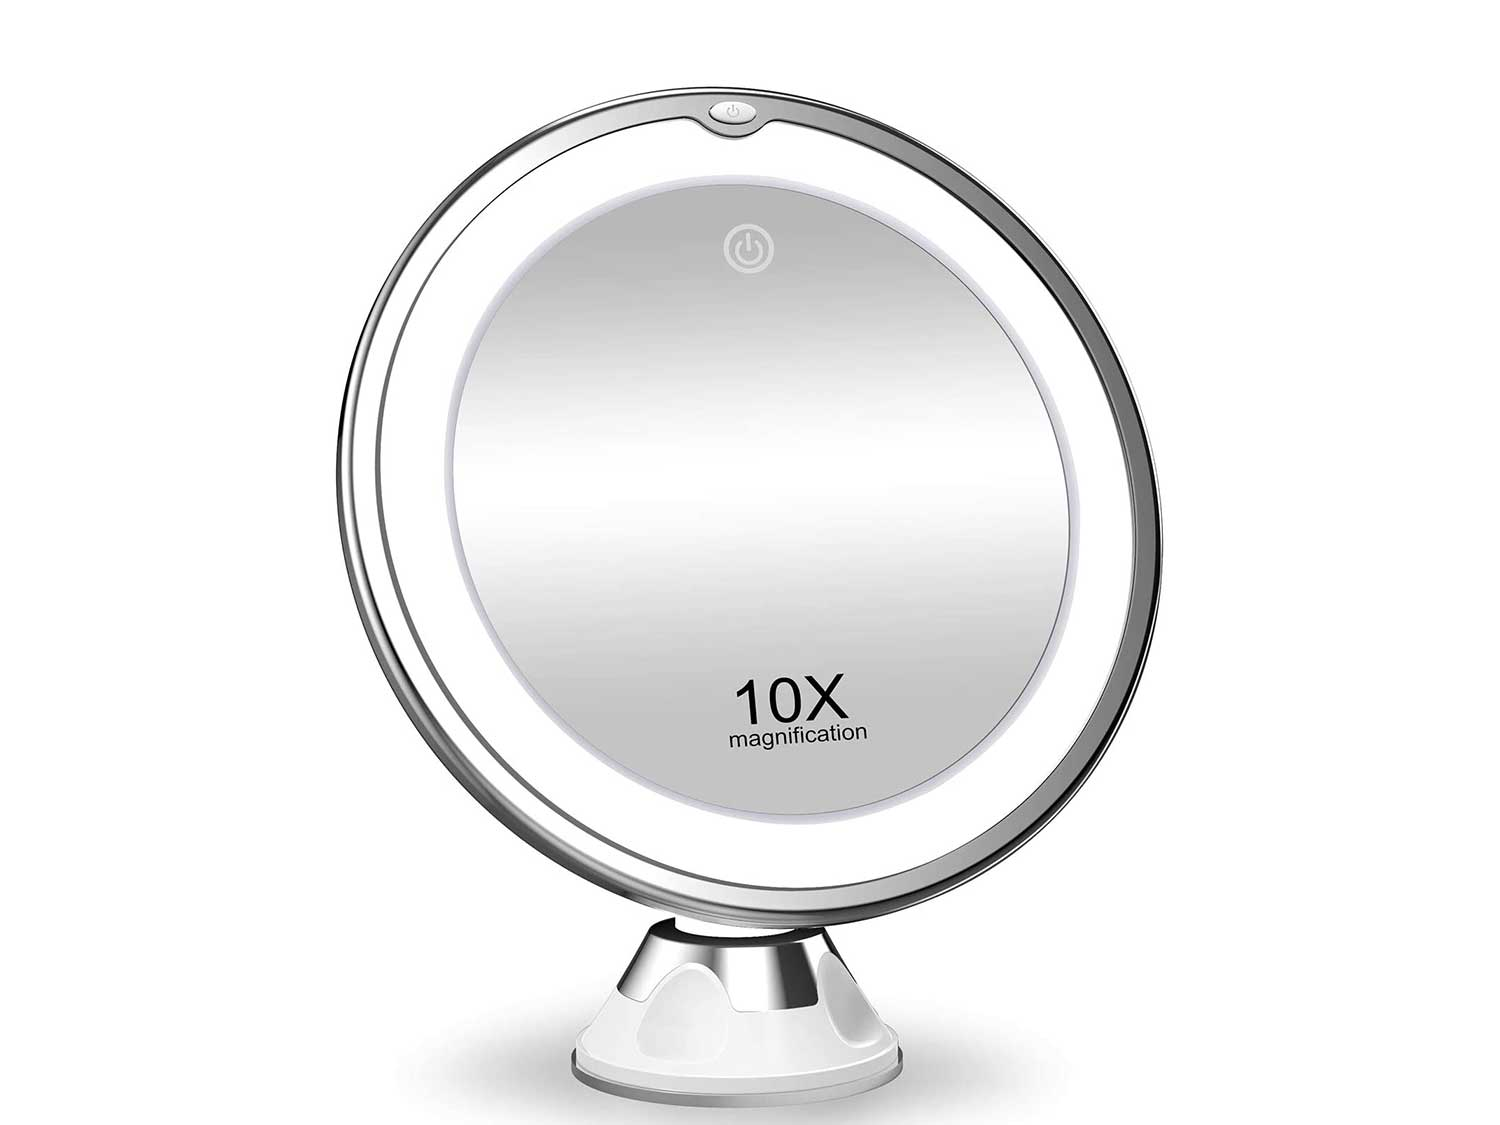 KOOLORBS 10X Magnifying Makeup Mirror with Lights, 3 Color Lighting, Intelligent Switch, 360 Degree Rotation, Powerful Suction Cup, Portable , Good for Tabletop, Bathroom, Traveling